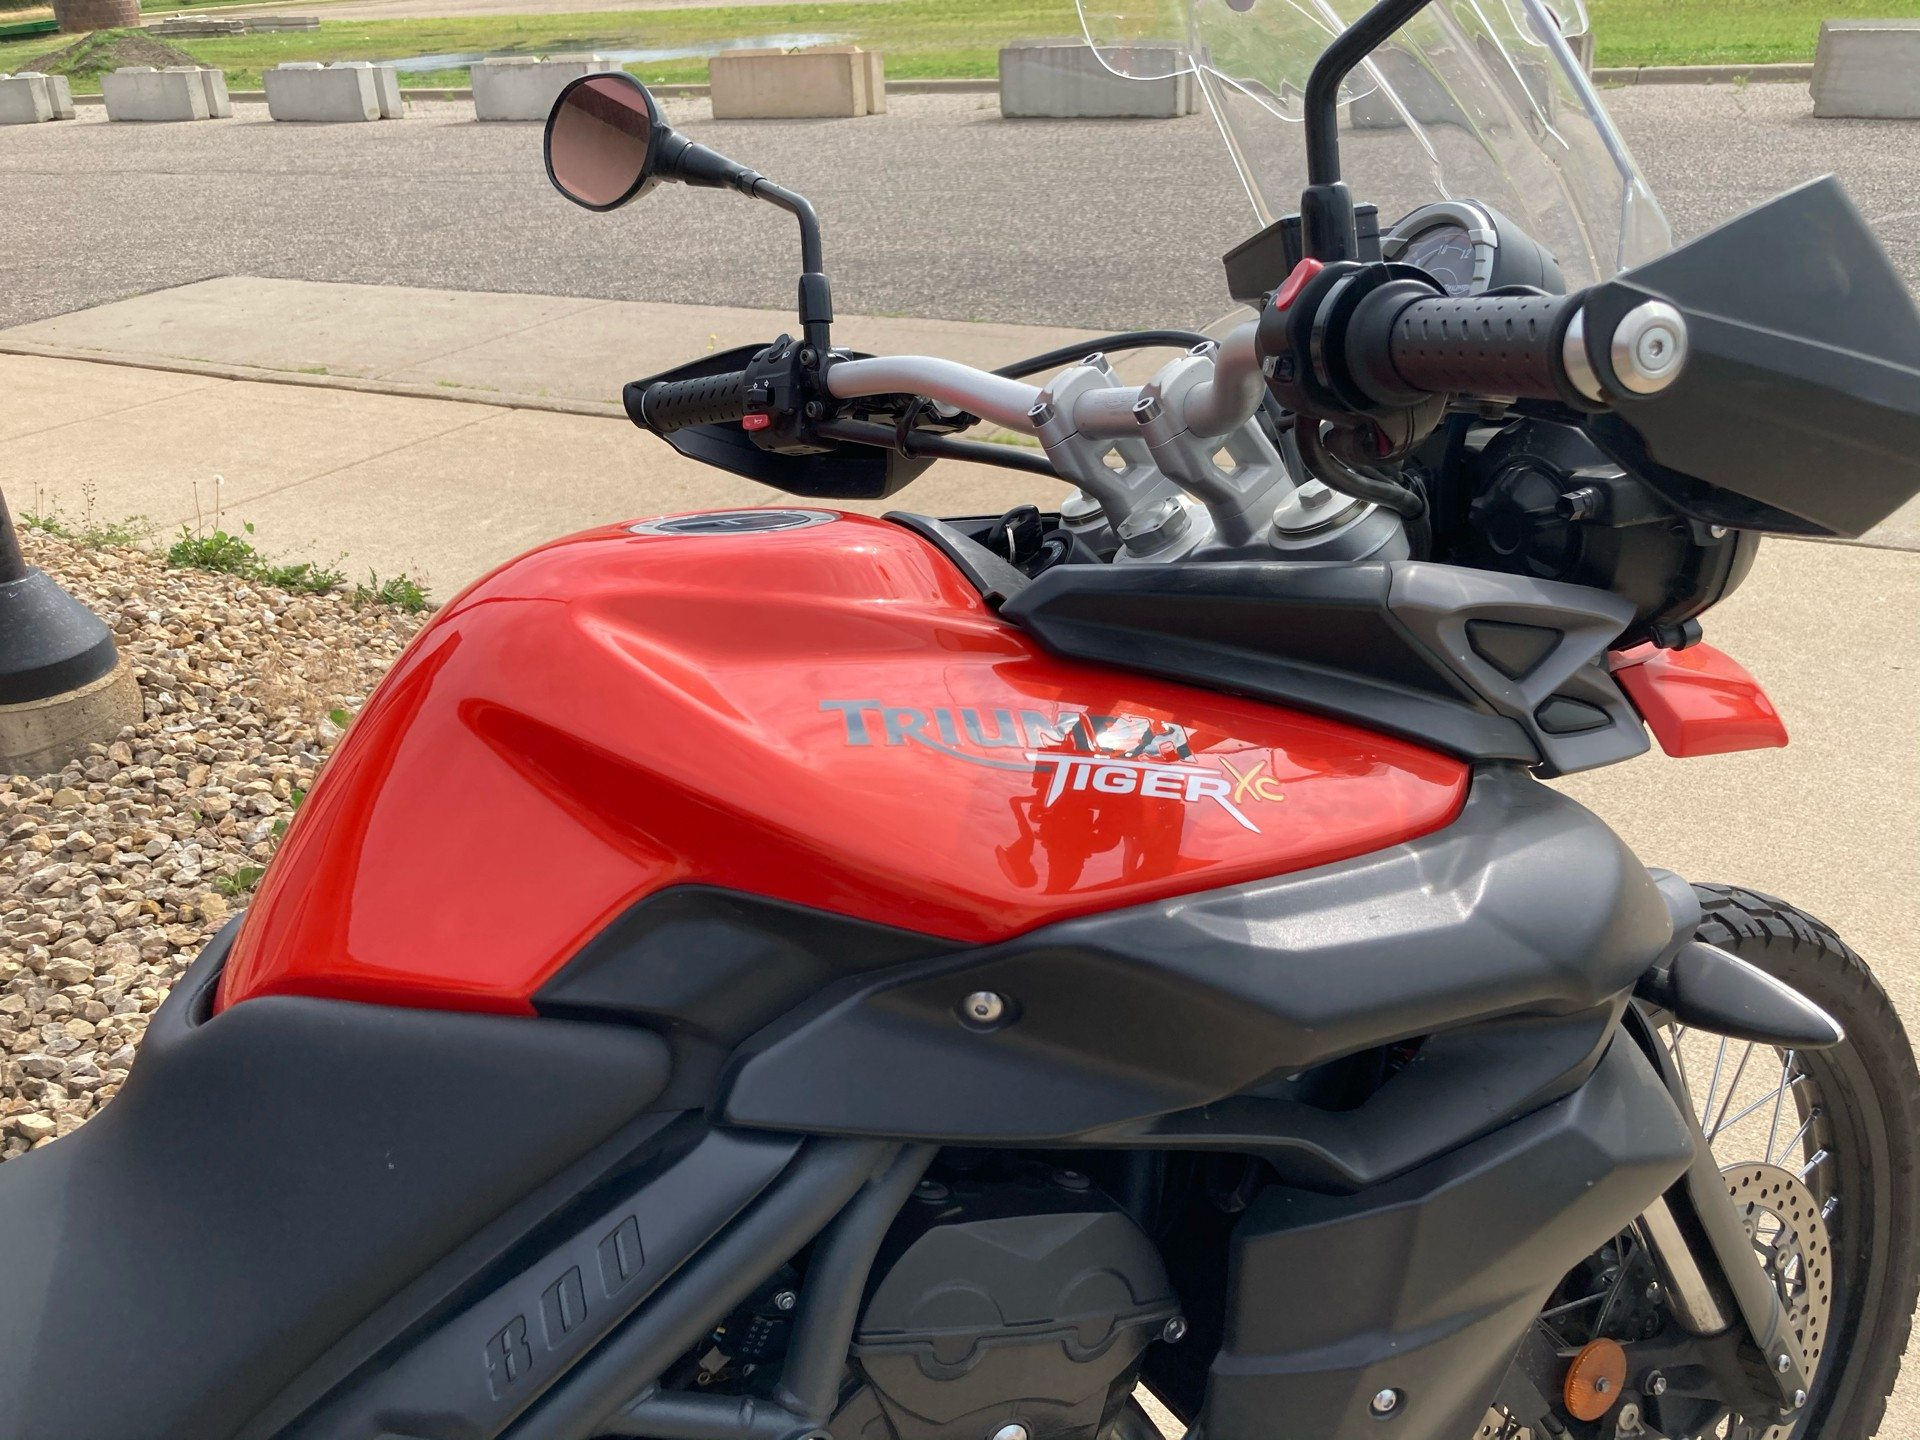 2012 Triumph Tiger 800 XC ABS in Belle Plaine, Minnesota - Photo 3